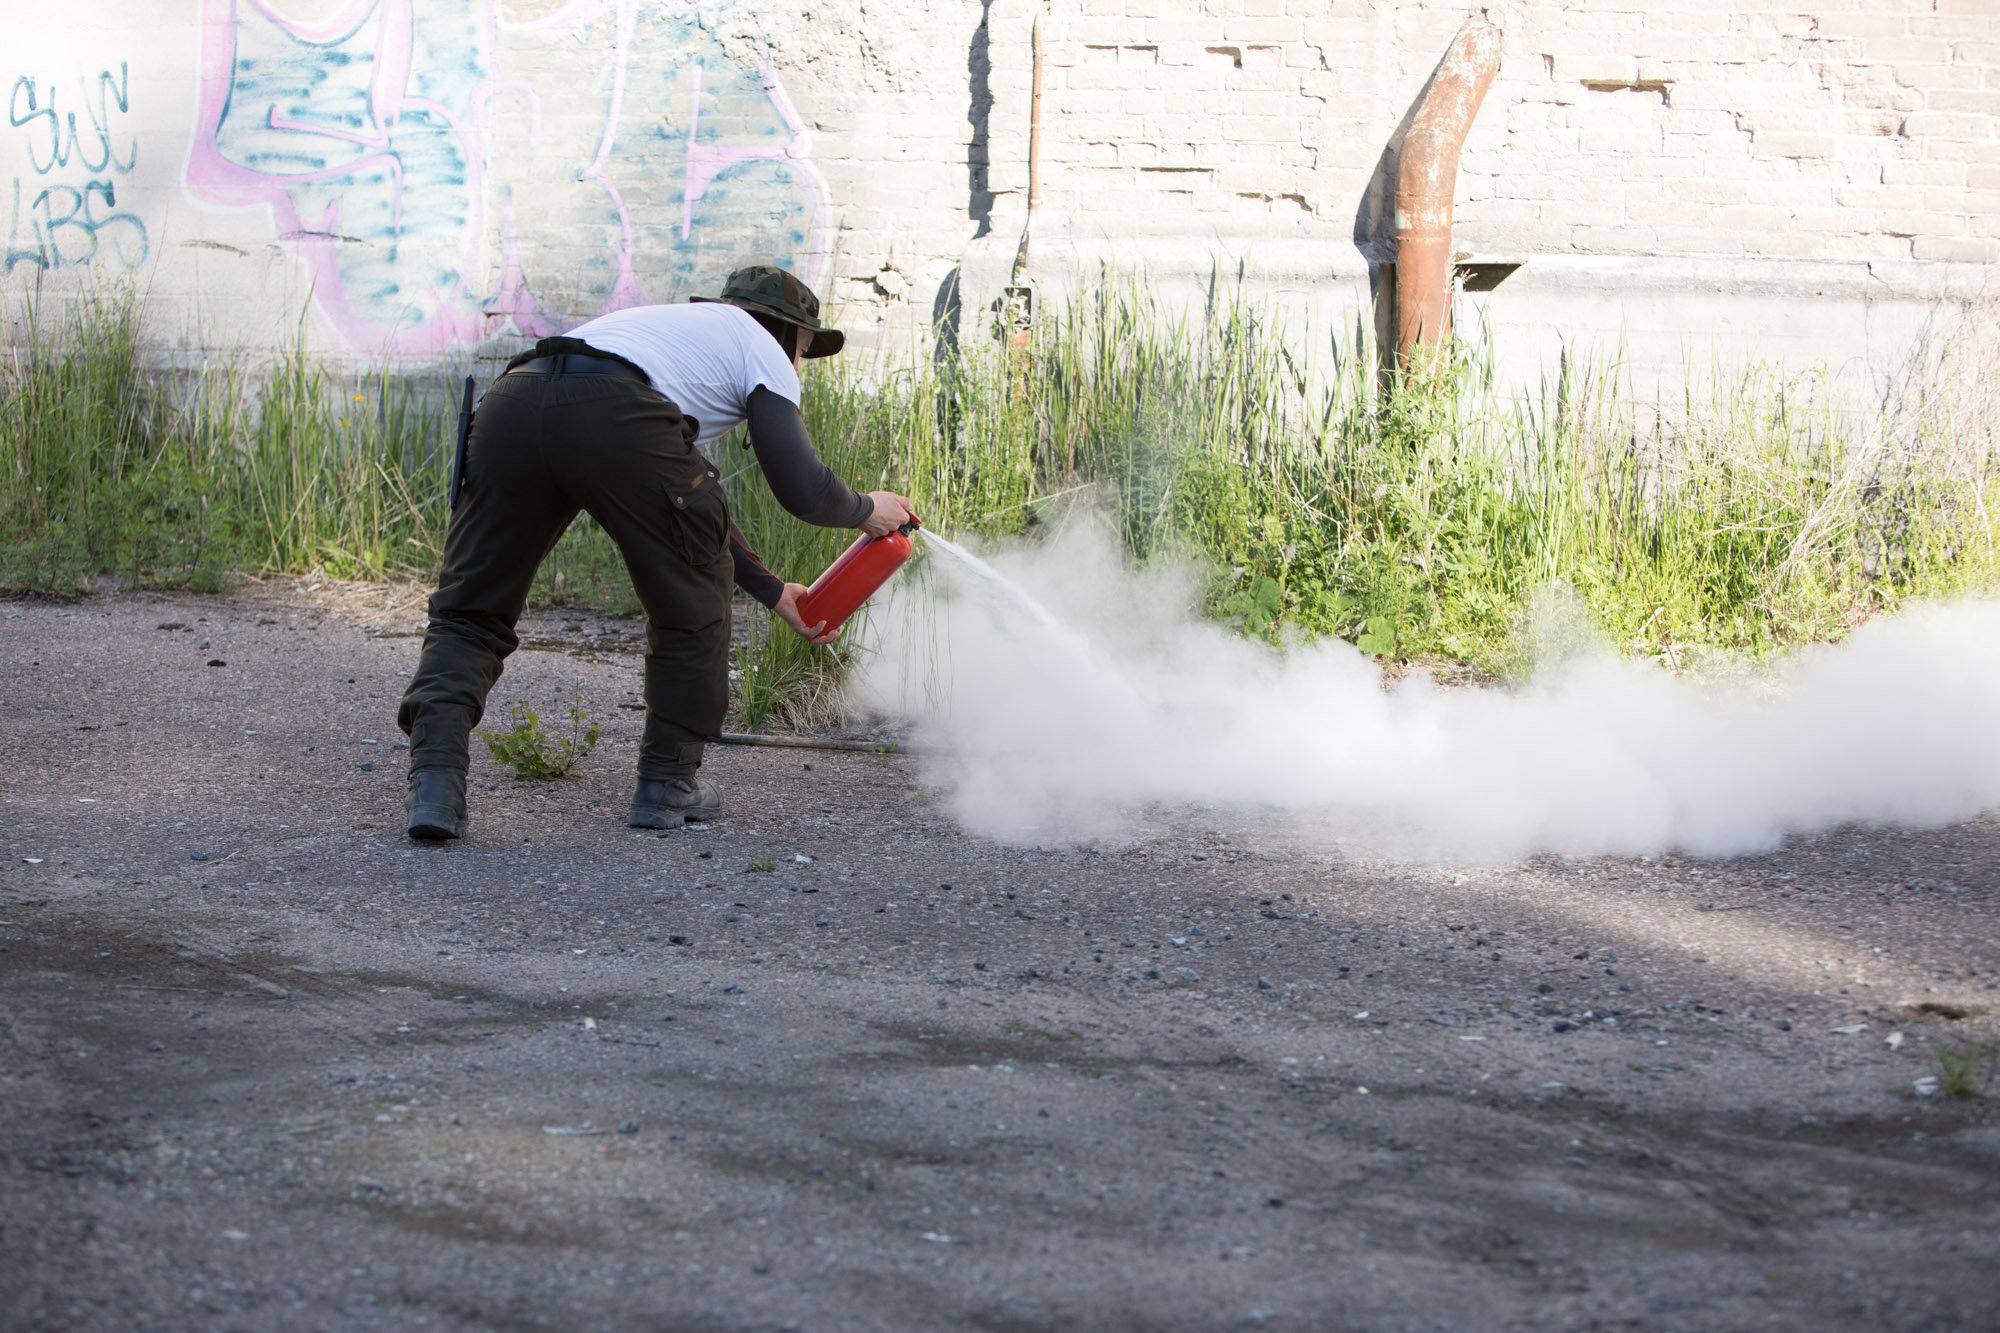 Training to use the powder extinguisher